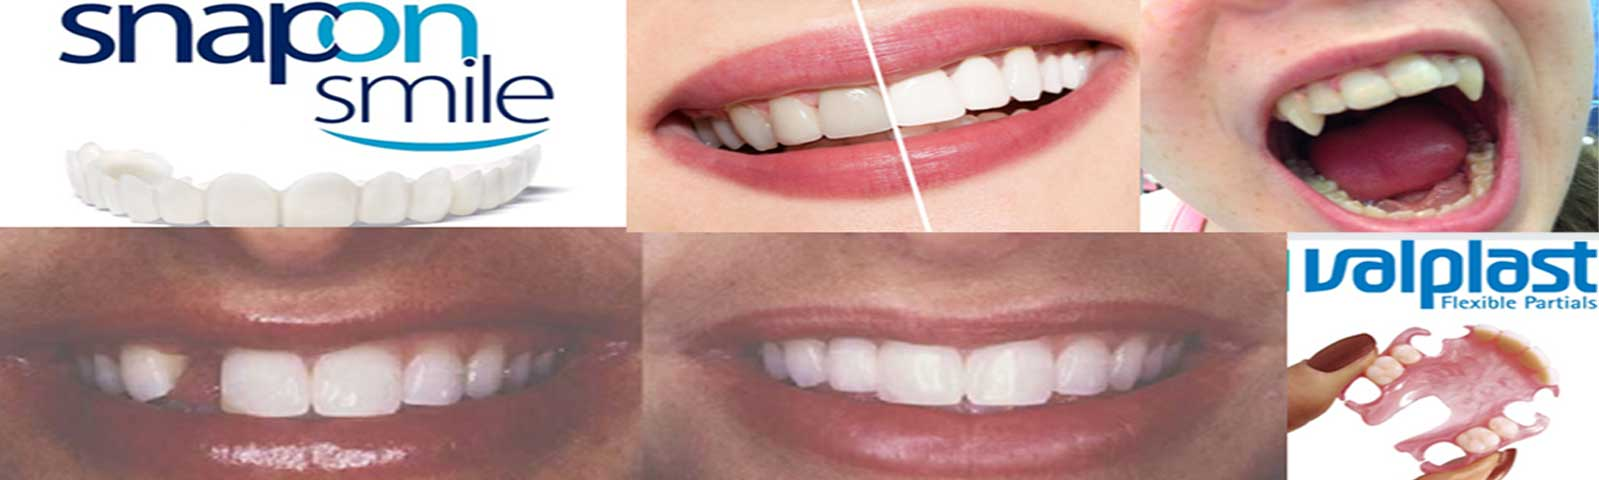 About us denture cosmetics affordable dentures home visits for dentures solutioingenieria Choice Image